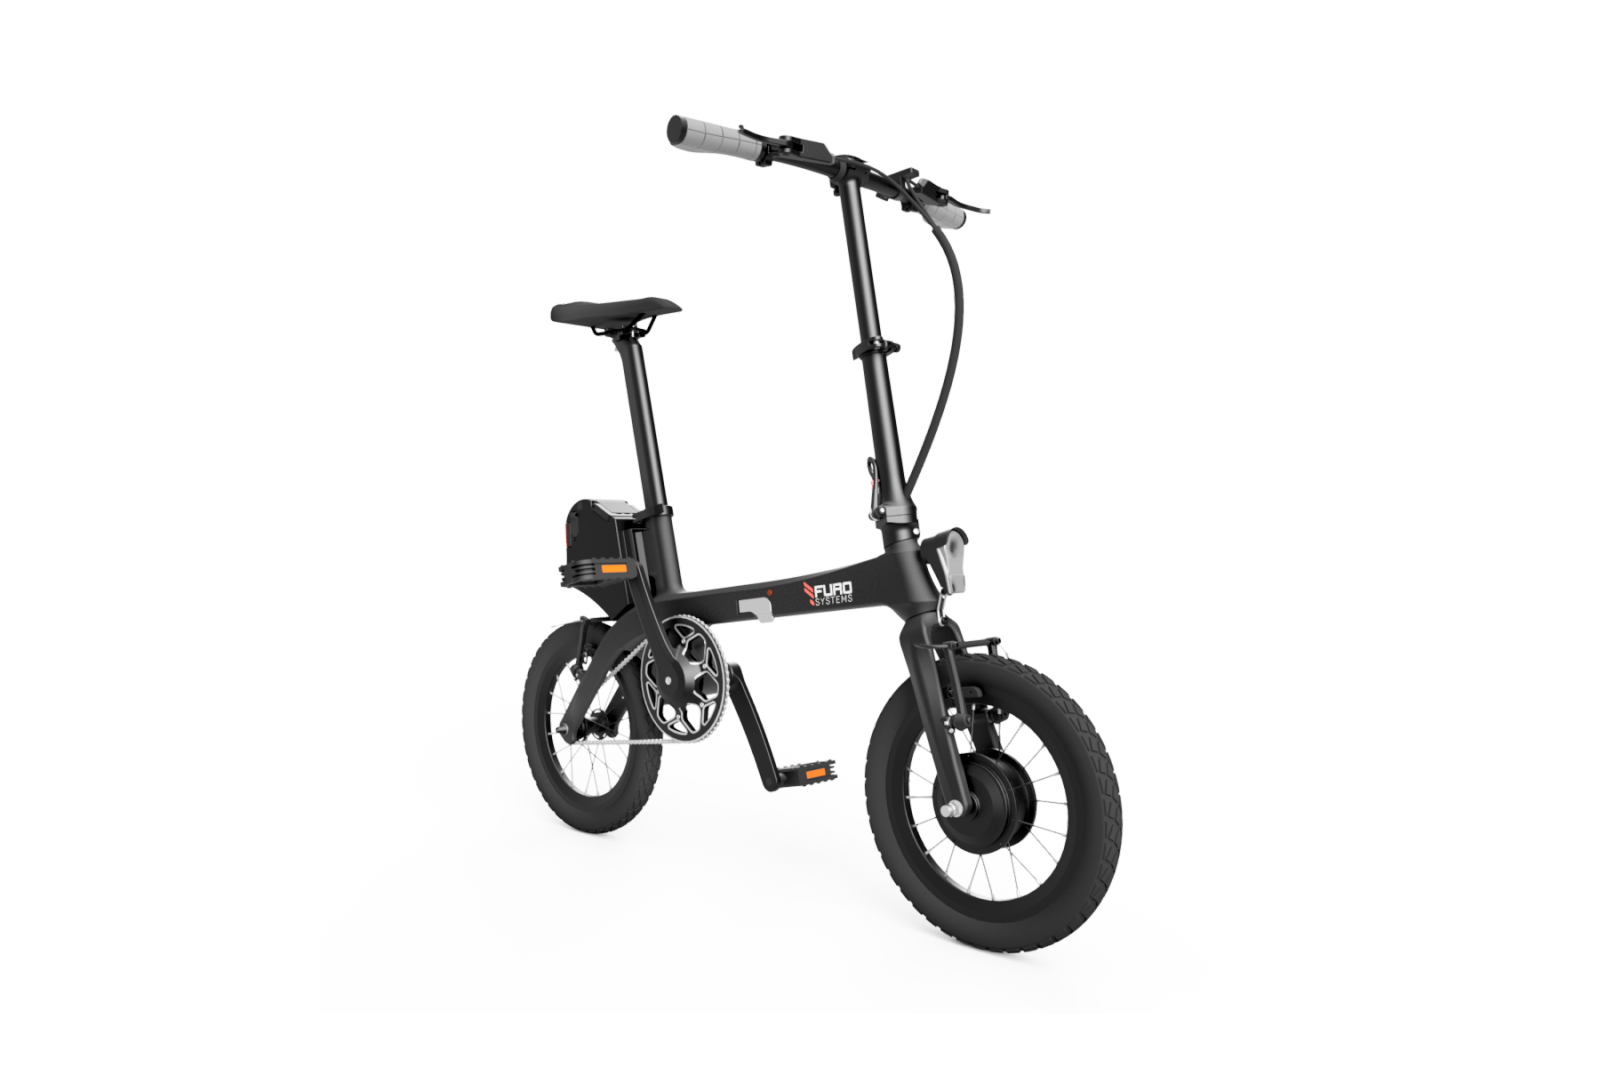 most compact electric folding bike in the world